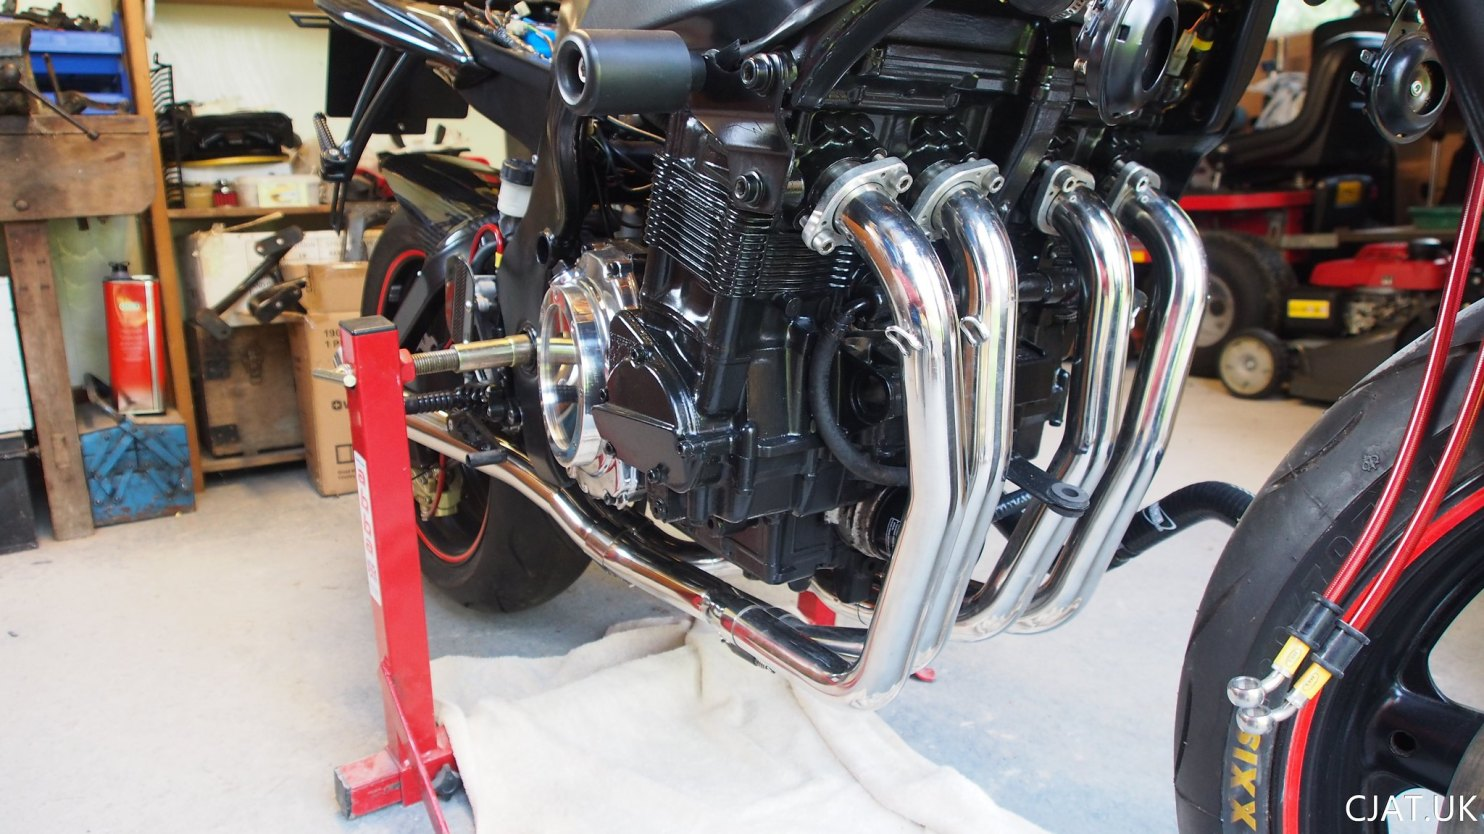 Suzuki RF900 StreetFighter polished stainless steel exhaust headers from akrapovic